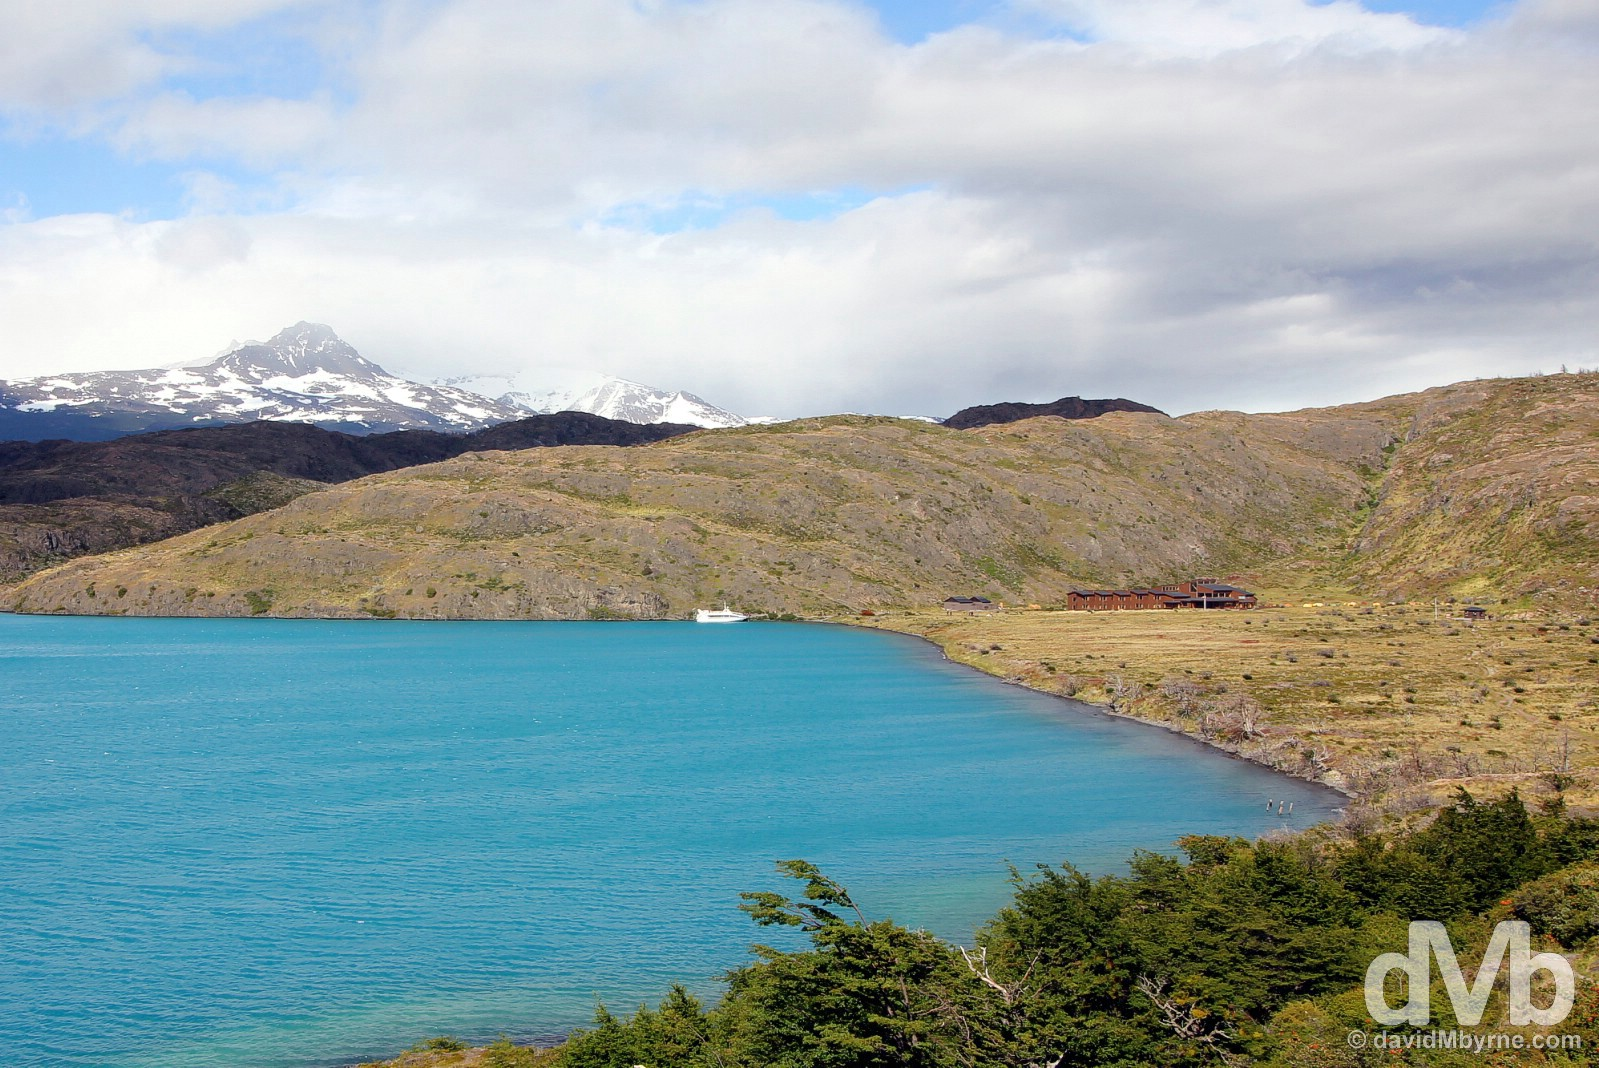 Lago (Lake) Pehoe & Refugio y Campamento Paine Grande in Torres del Paine National Park, Chile. November 22, 2015.